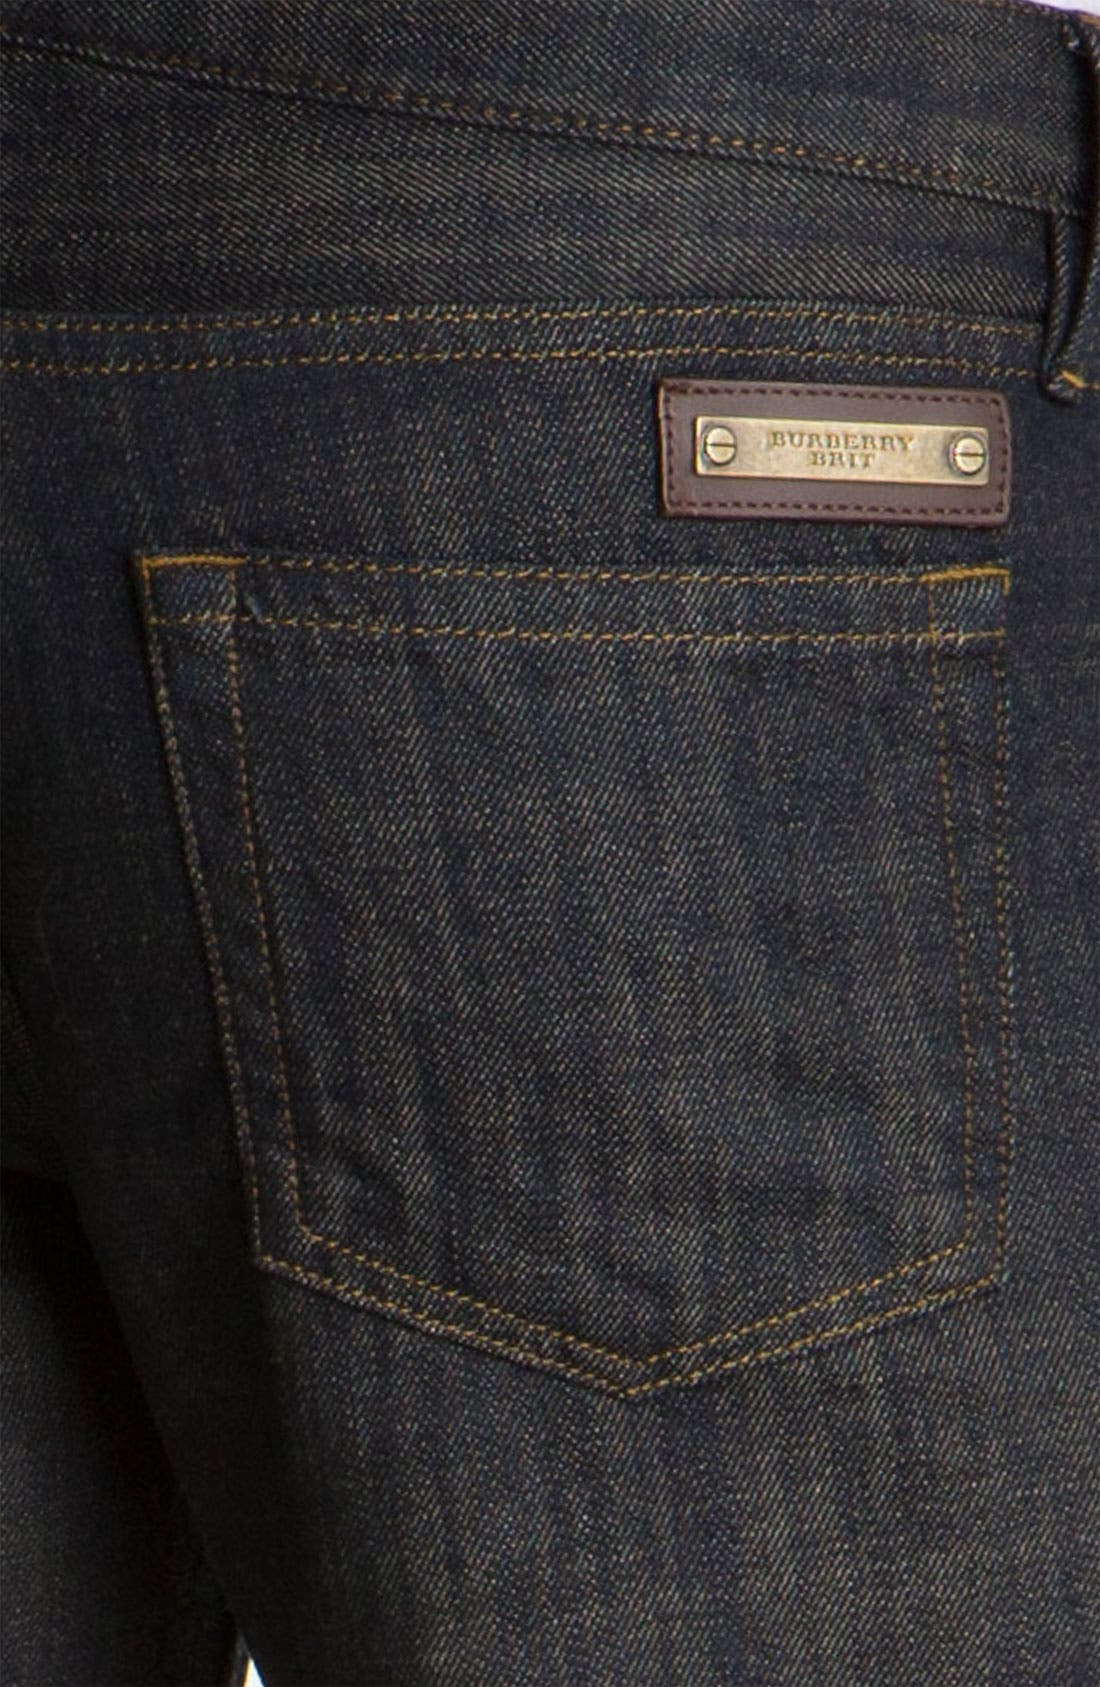 Alternate Image 4  - Burberry Brit 'Cavendish' Resin Washed Denim Jeans (Indigo Blue)